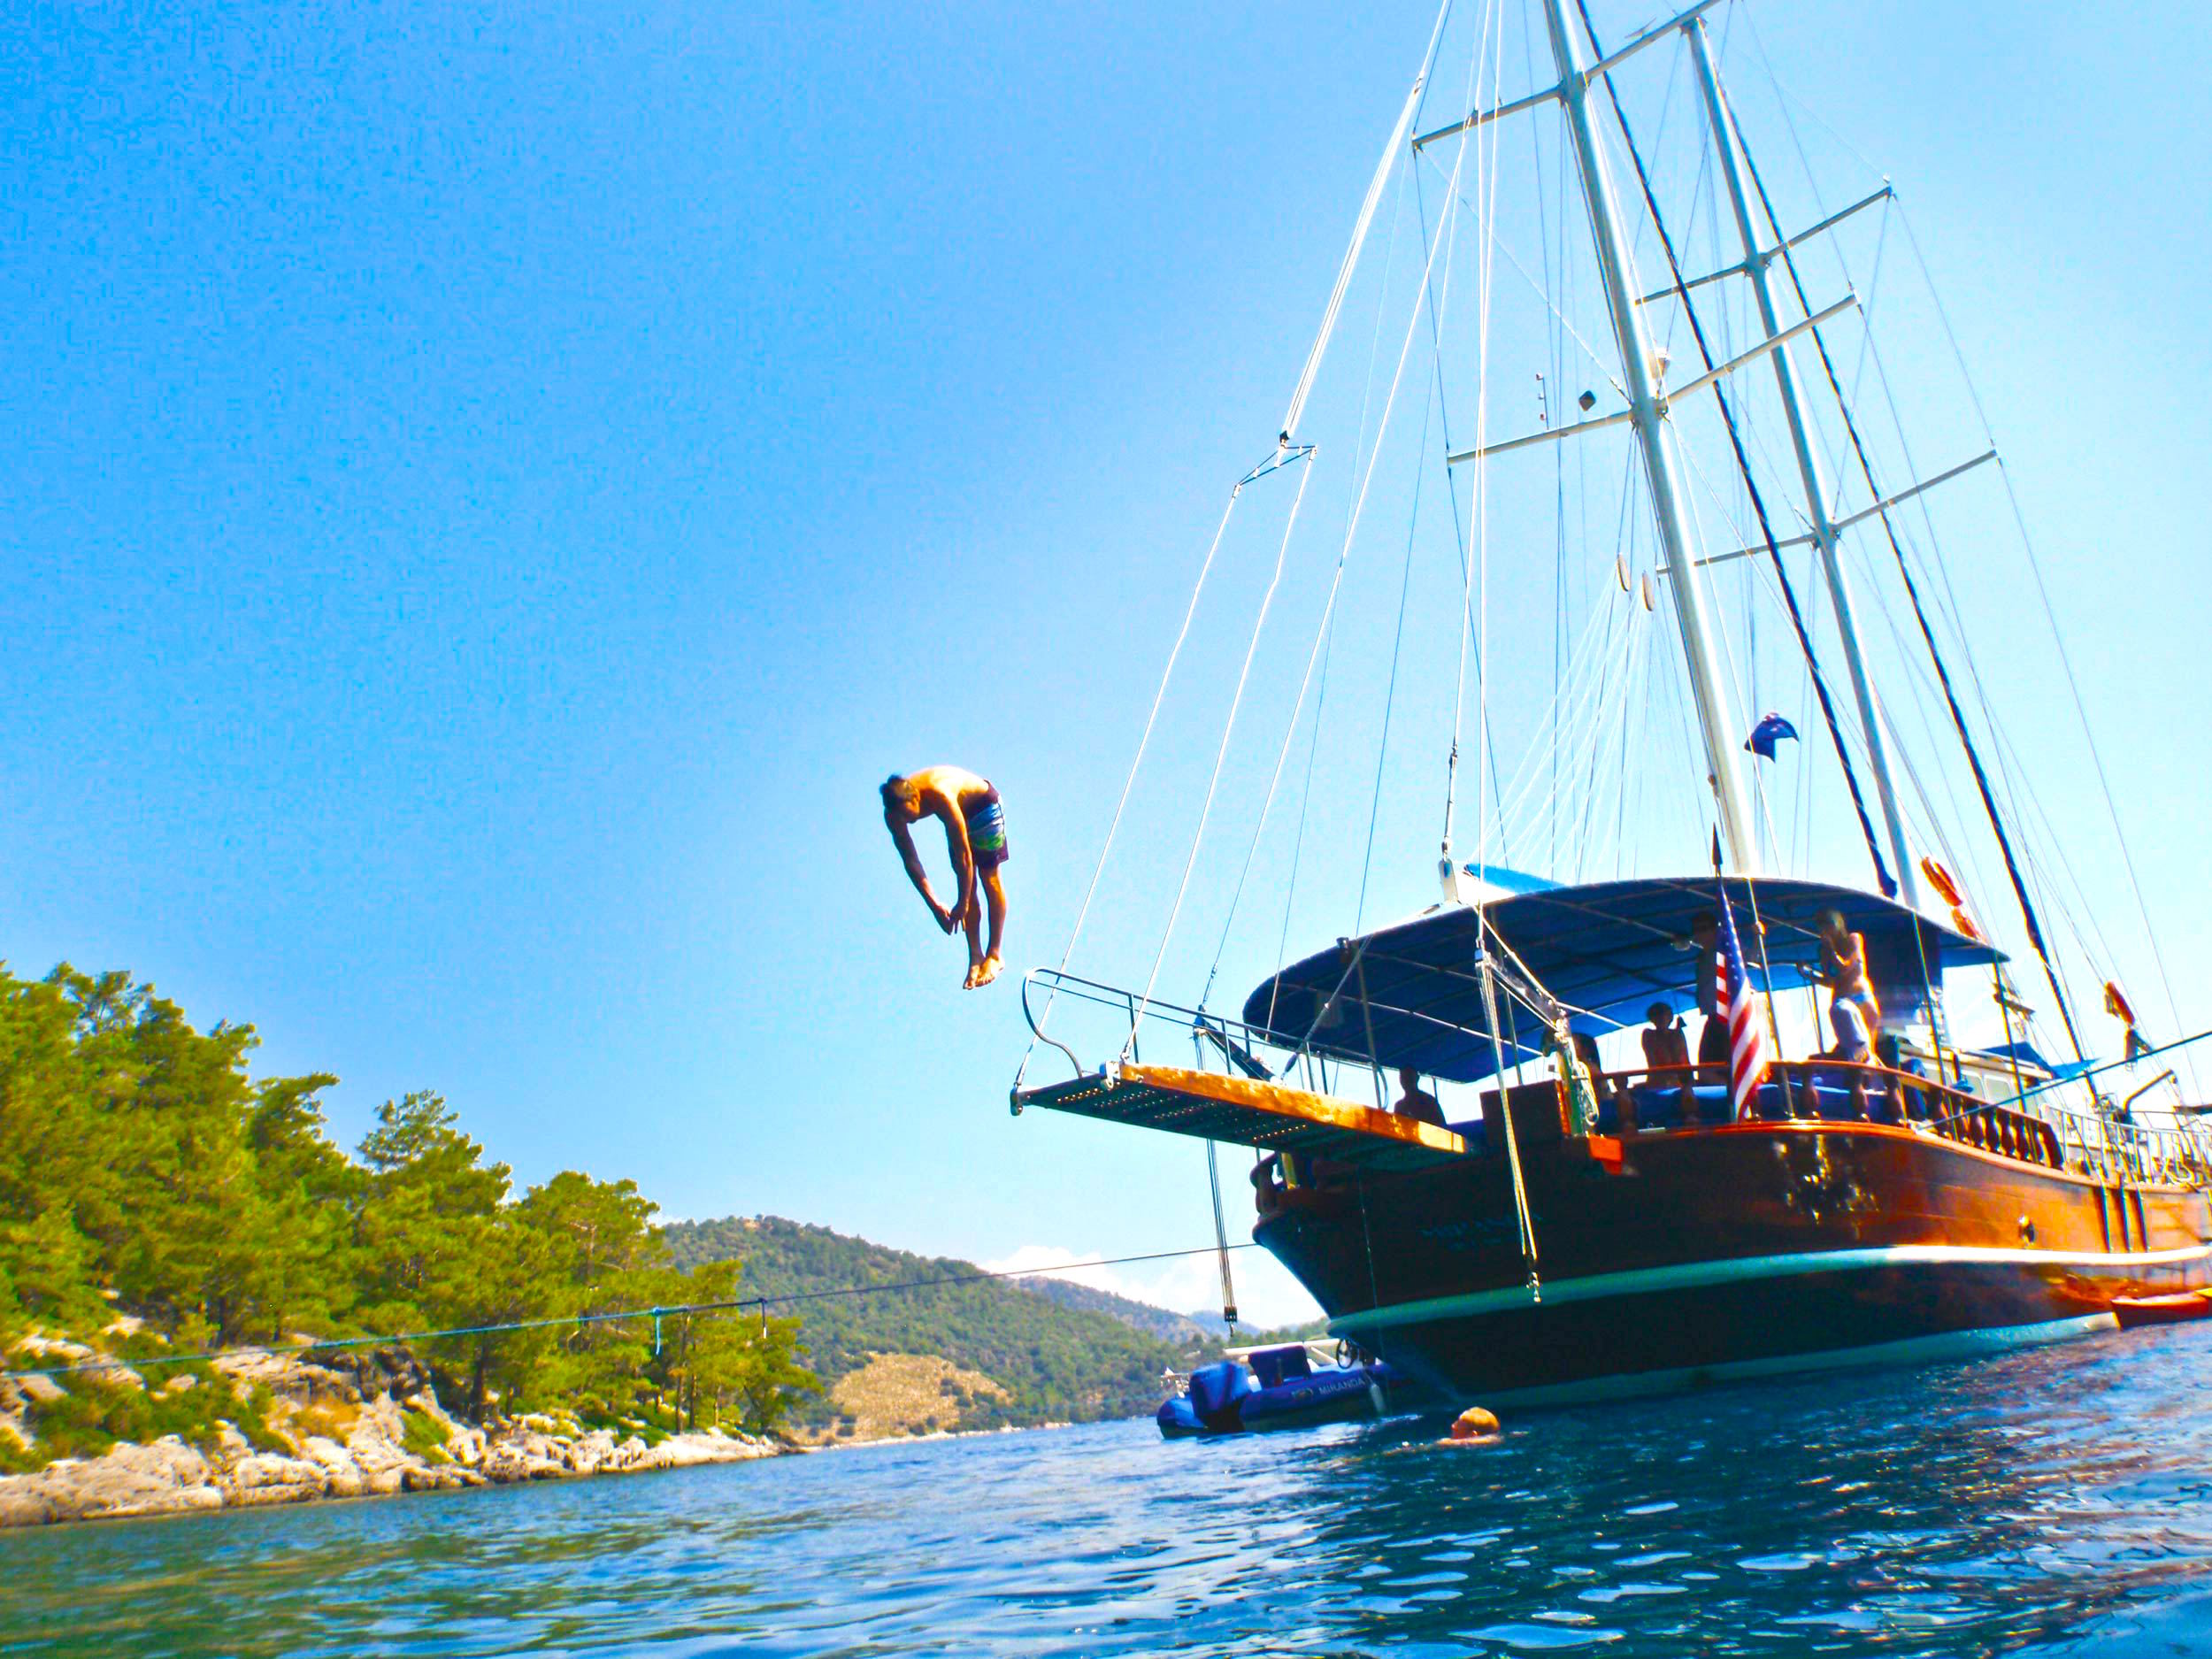 Gulet Sailing – A Laid Back Charter Option